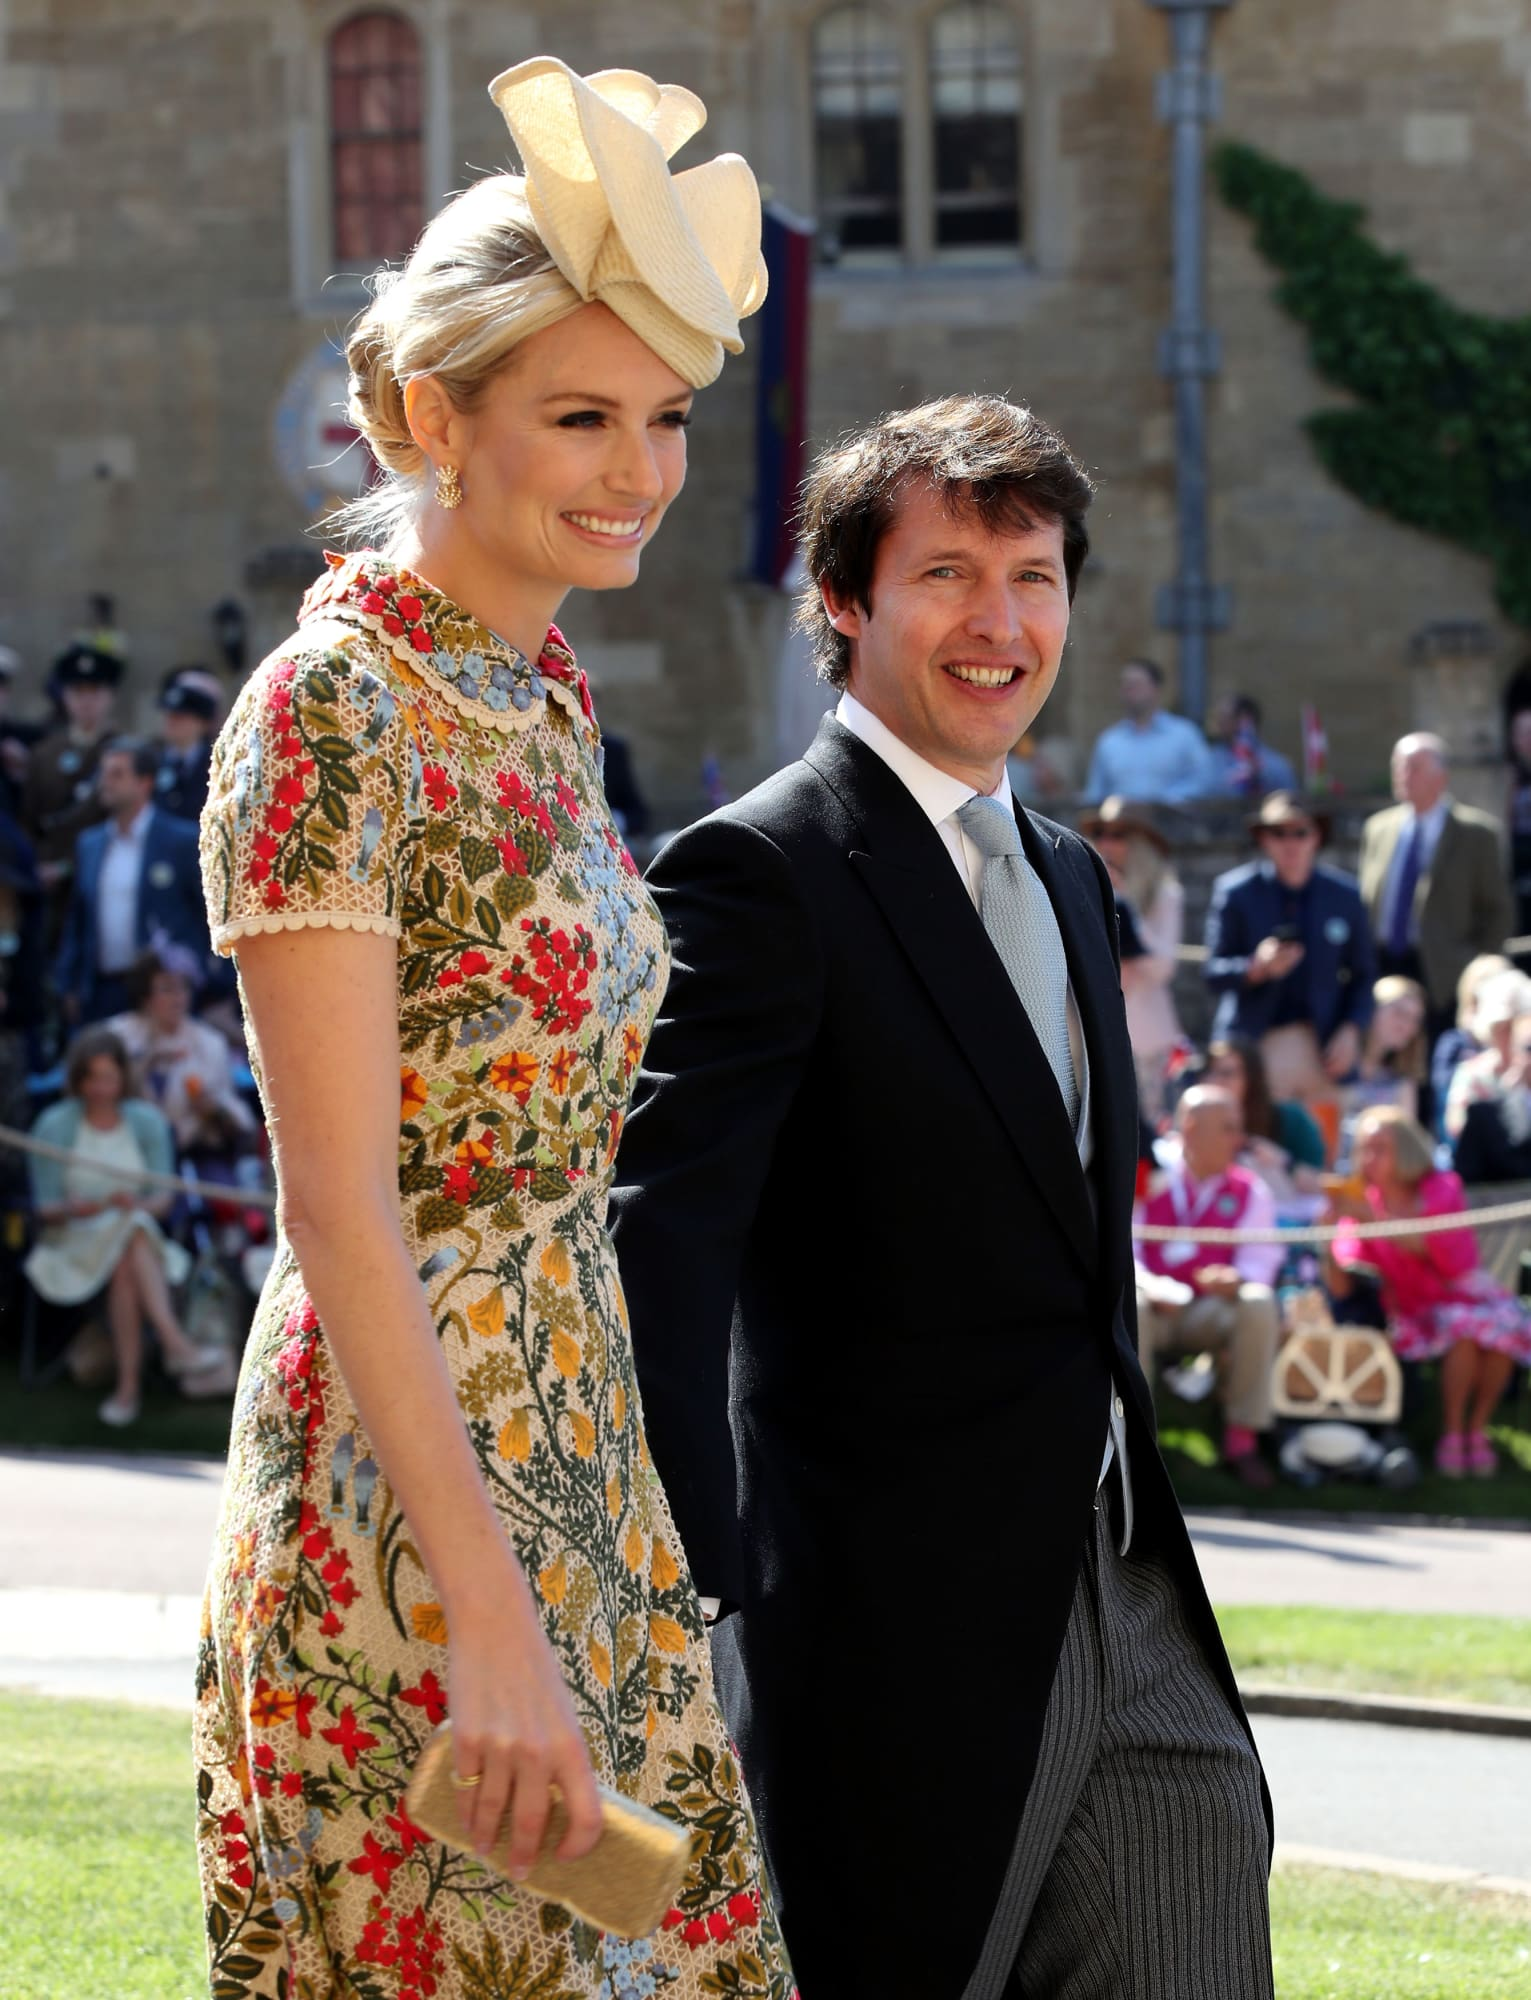 Sofia Wellesley and James Blunt at the Royal Wedding  sofiawellesley   jamesblunt  royalwedding  fascinator 9889bae8199f